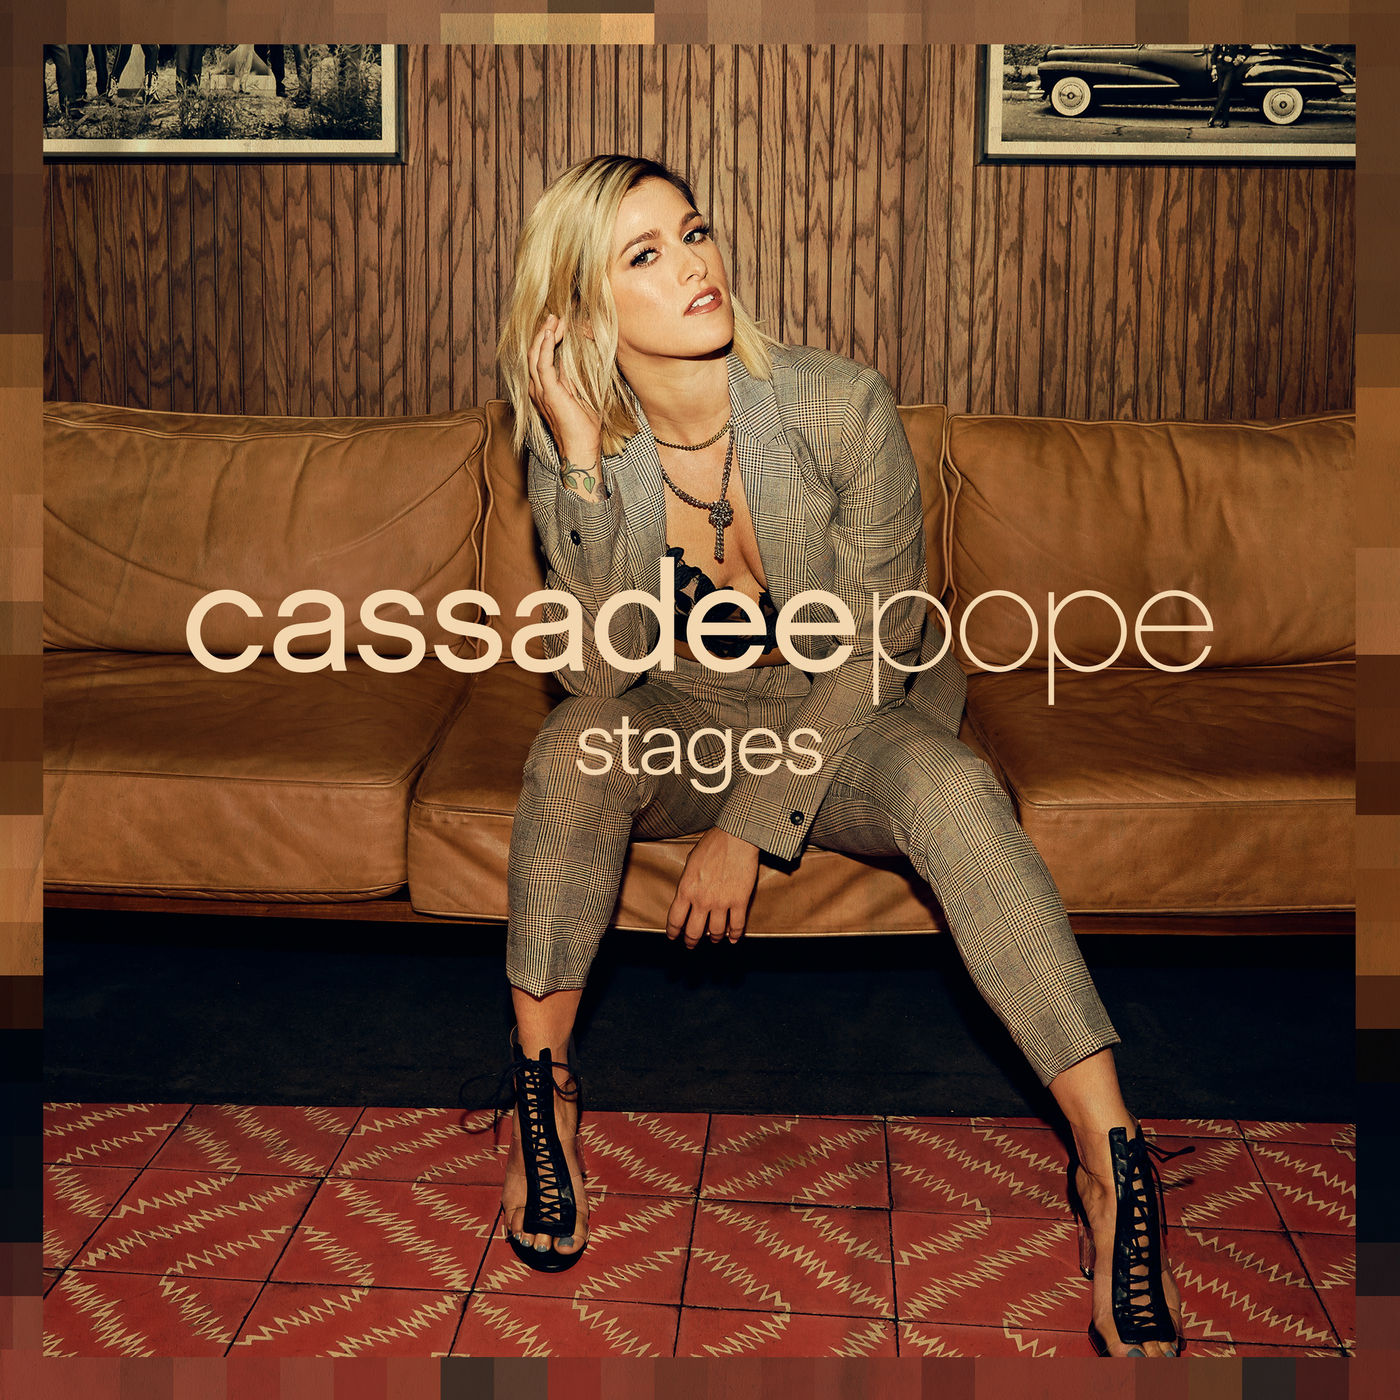 Cassadee - Pope stages (2019)